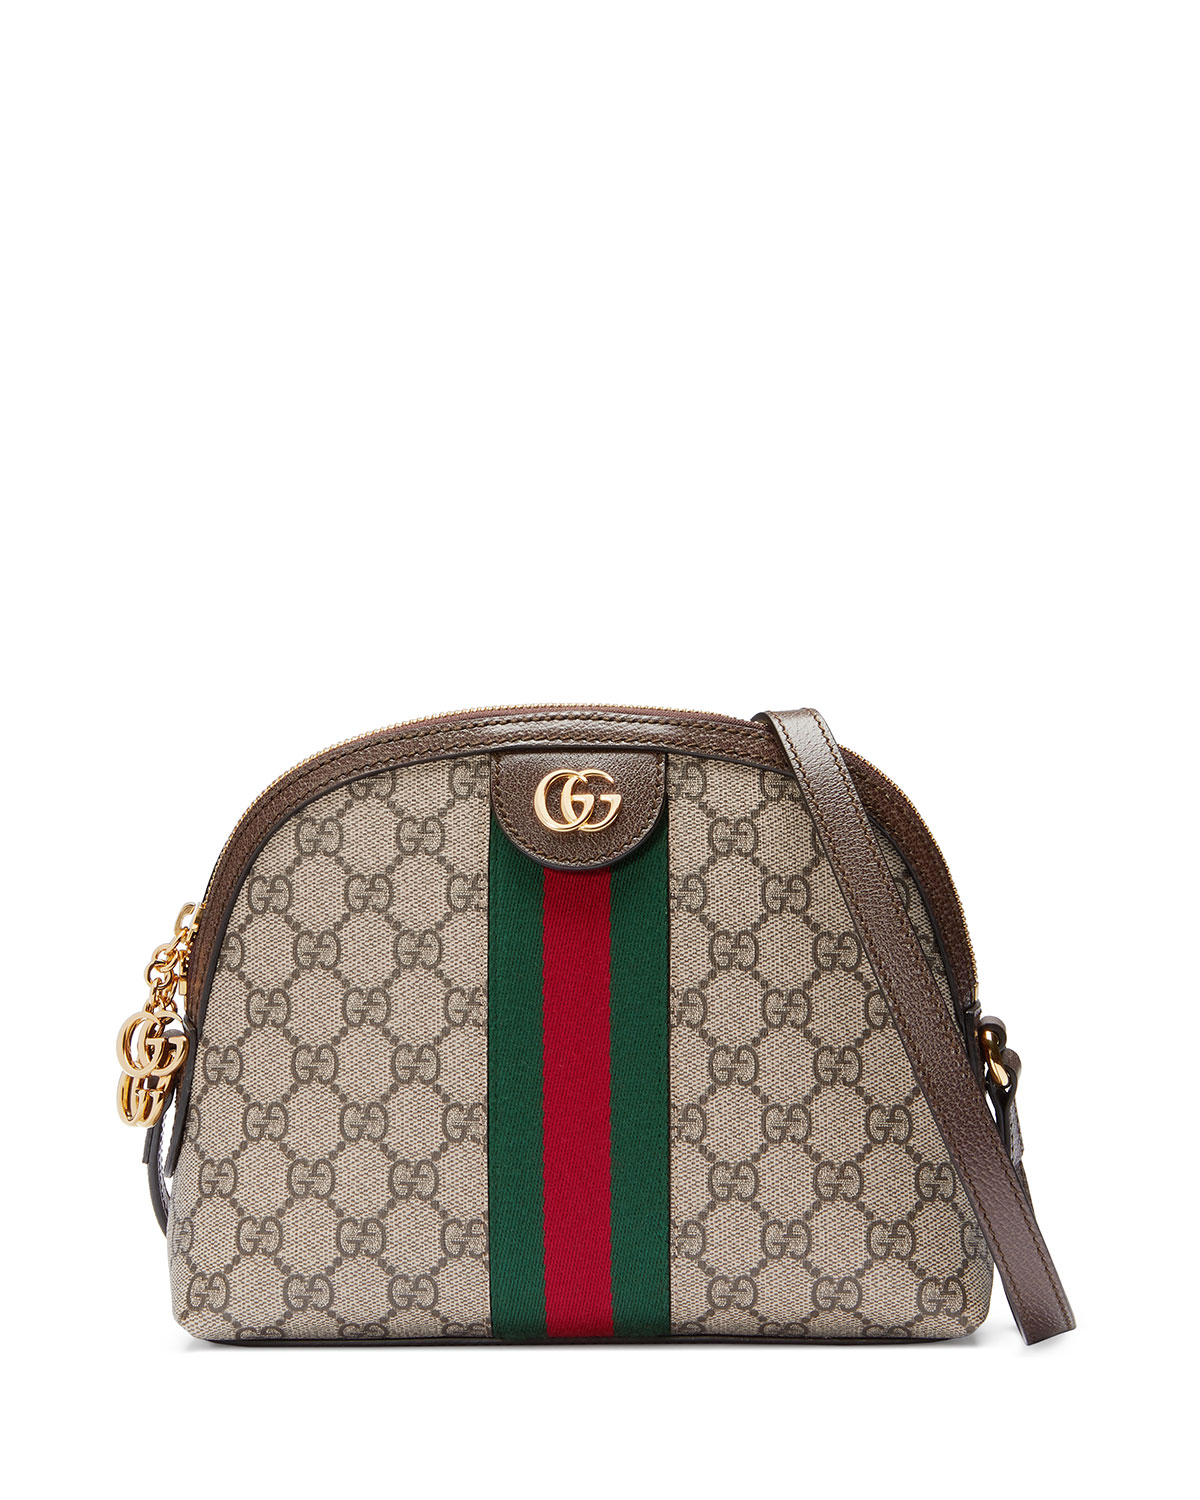 394ae253f75c Gucci Linea Dragoni GG Supreme Canvas Small Shoulder Bag | Neiman Marcus